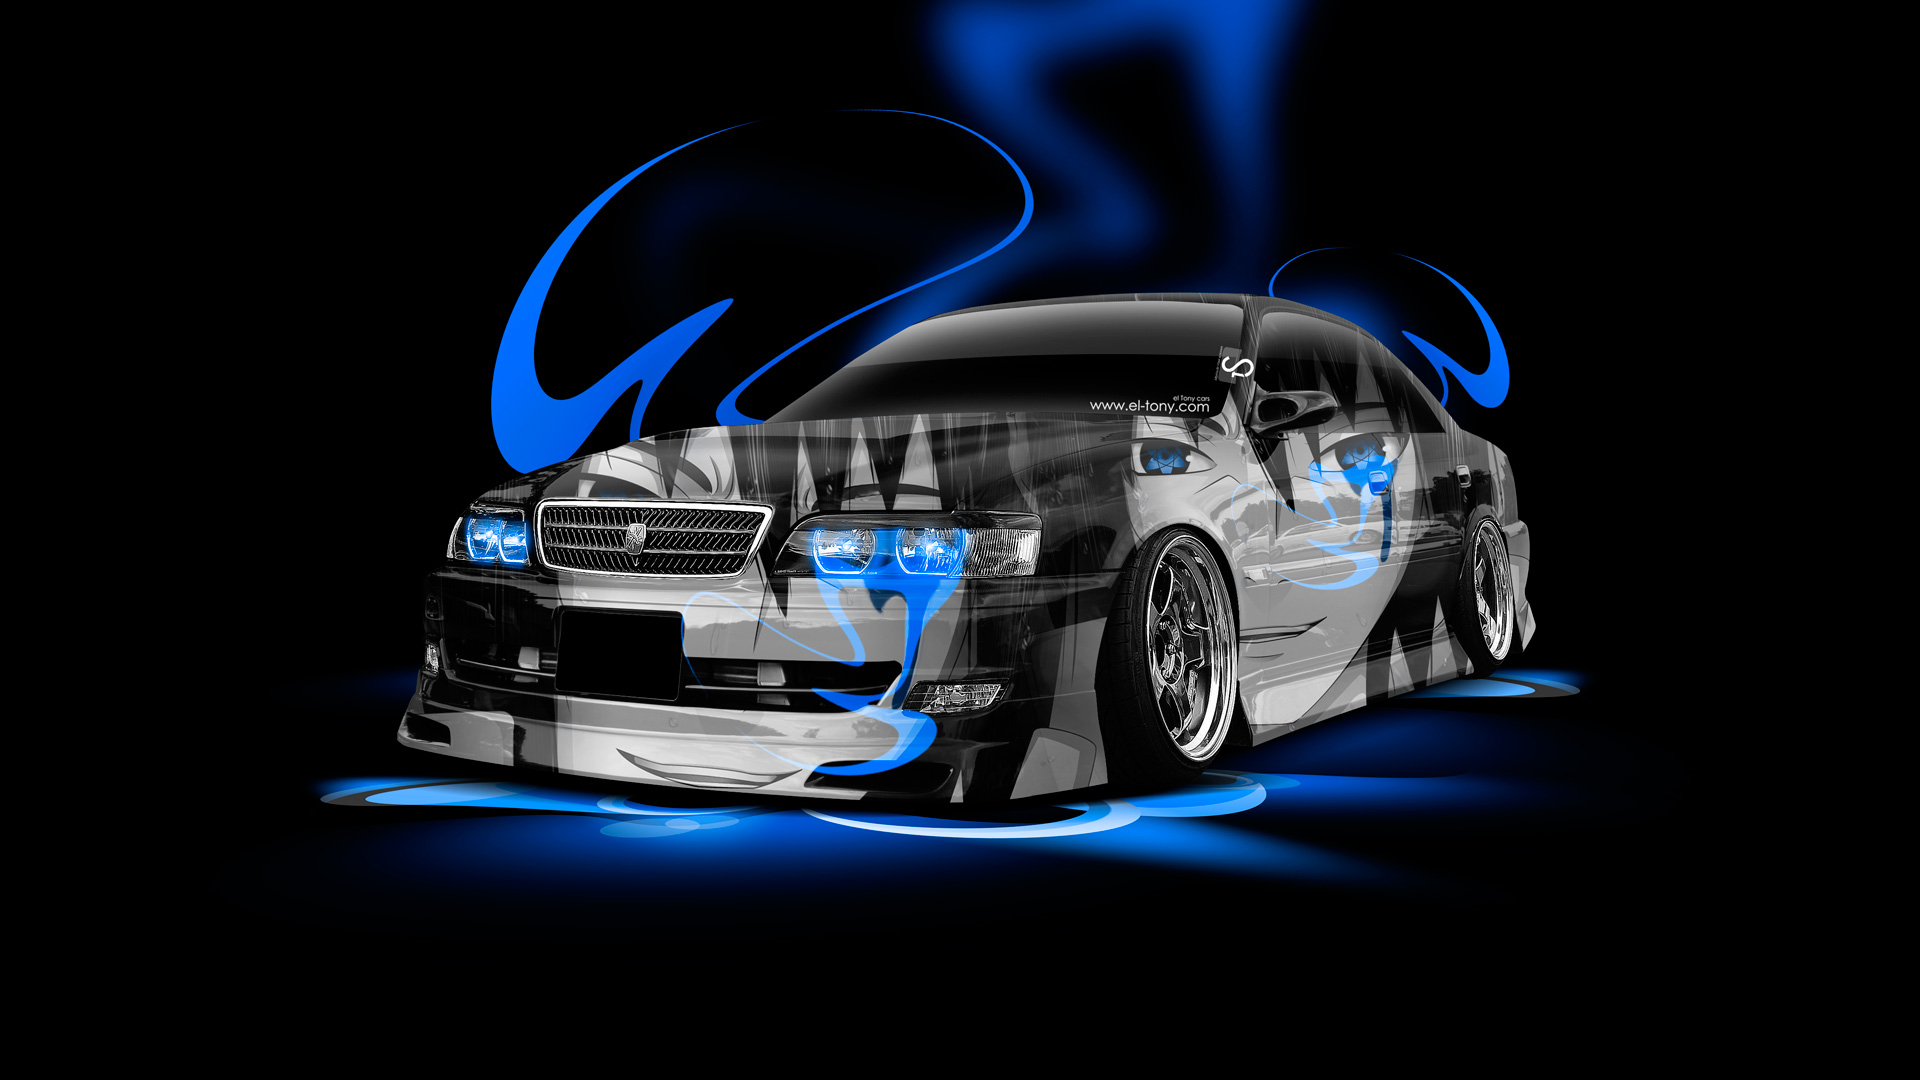 ... JDM Tuning 3D Crystal City. Charmant Toyota Chaser JZX100 Anime  Aerography Car 2014